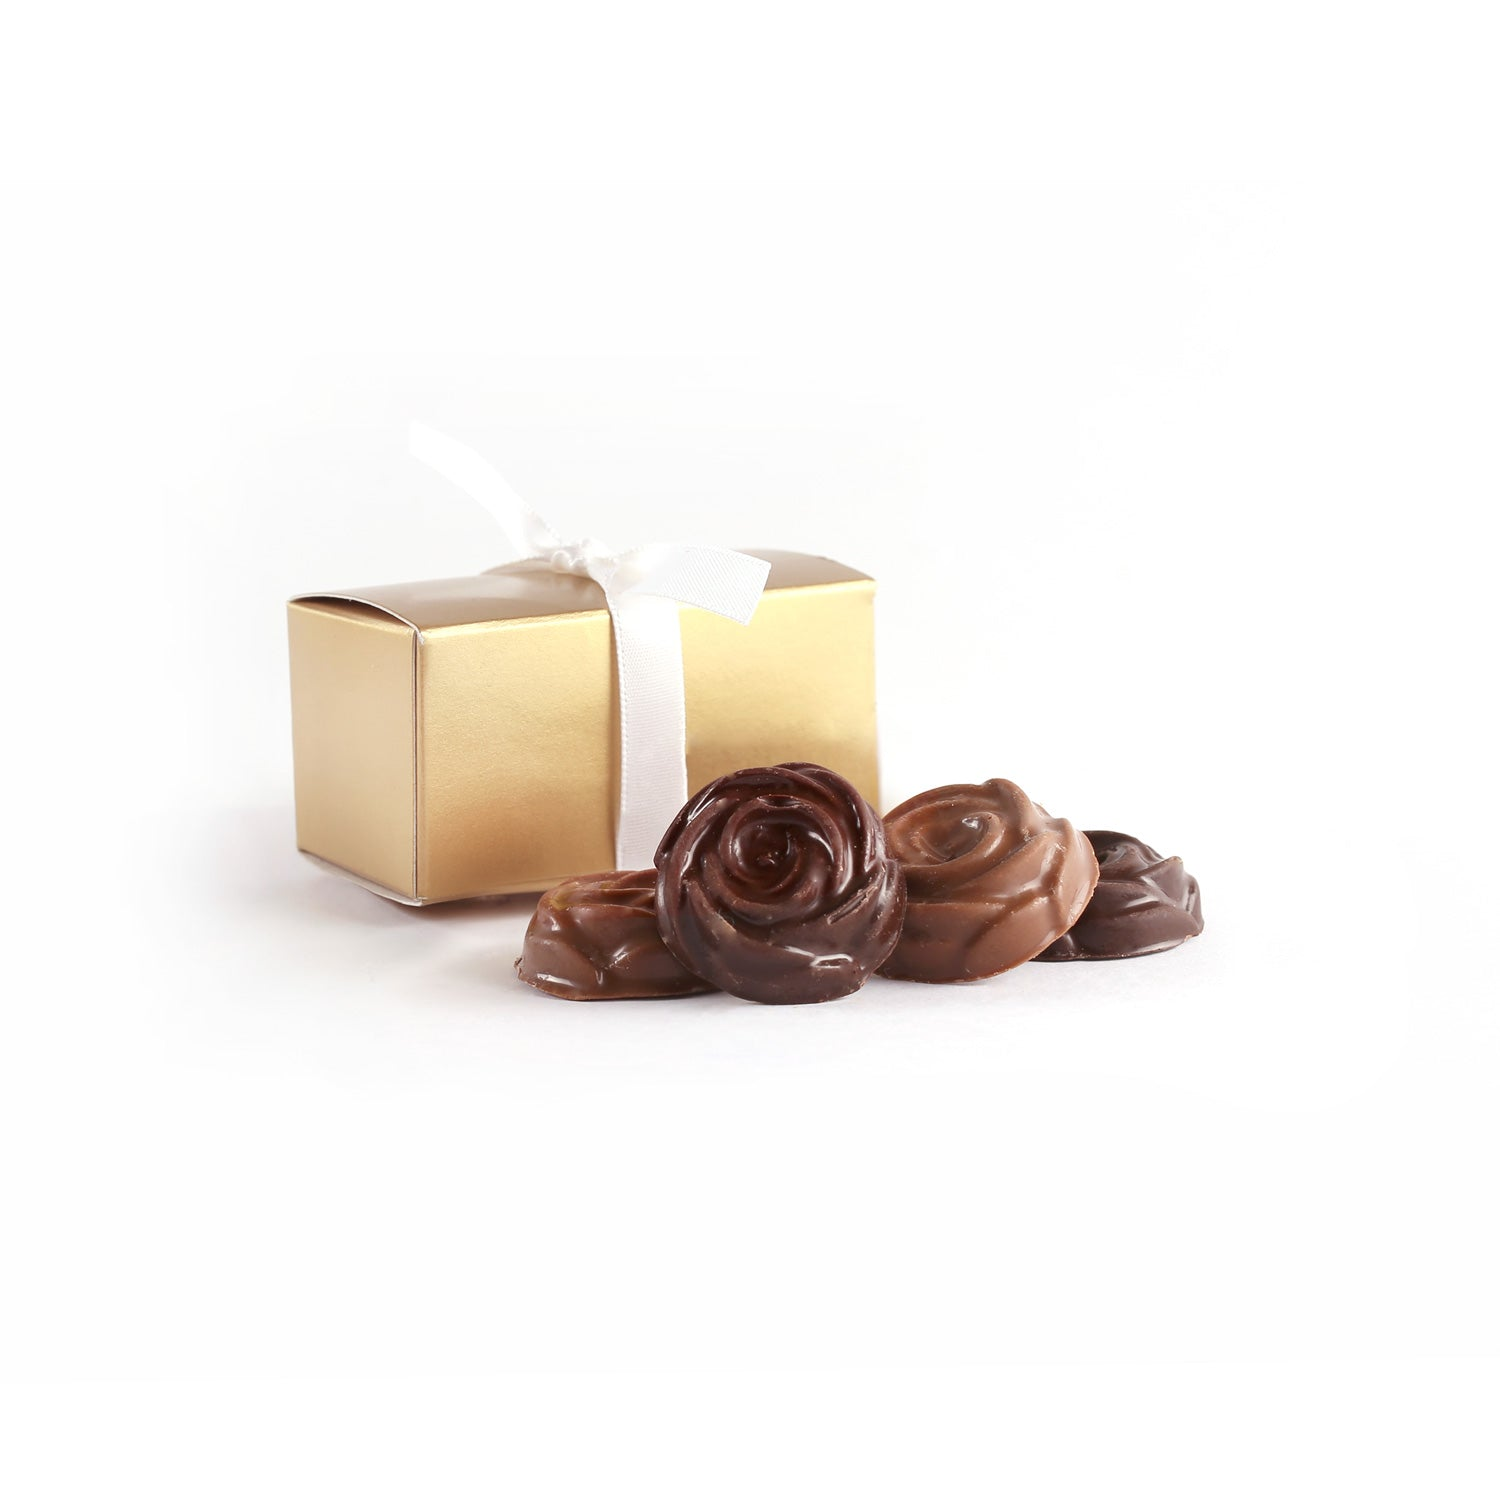 Product photo of two chocolate rosebud box with ribbon